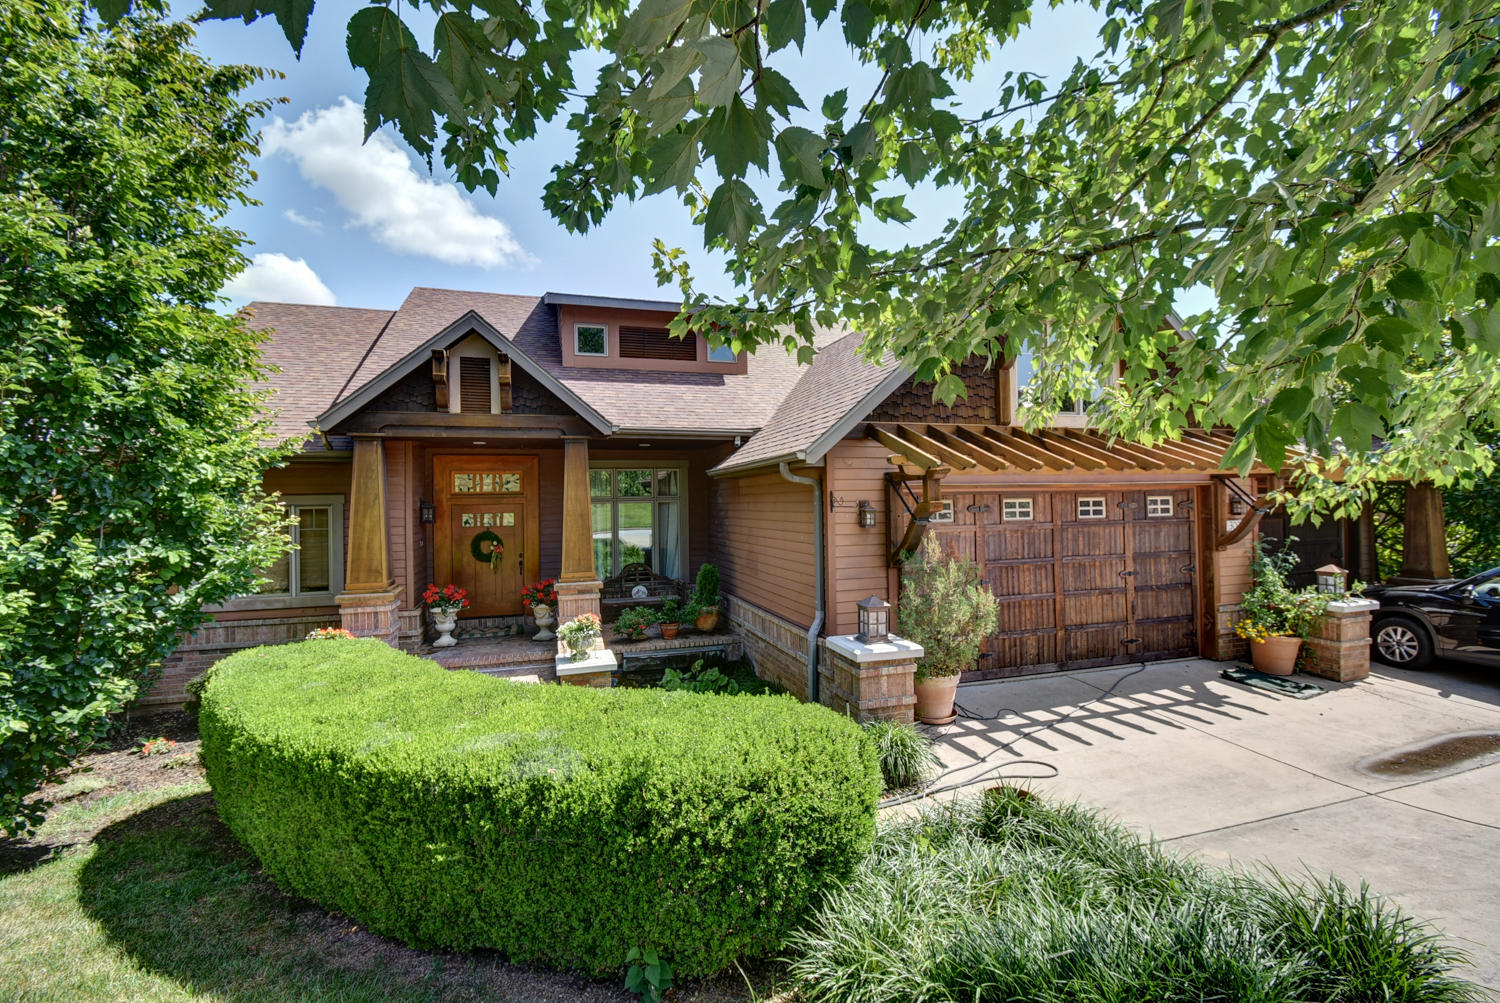 Houses for sale springfield mo